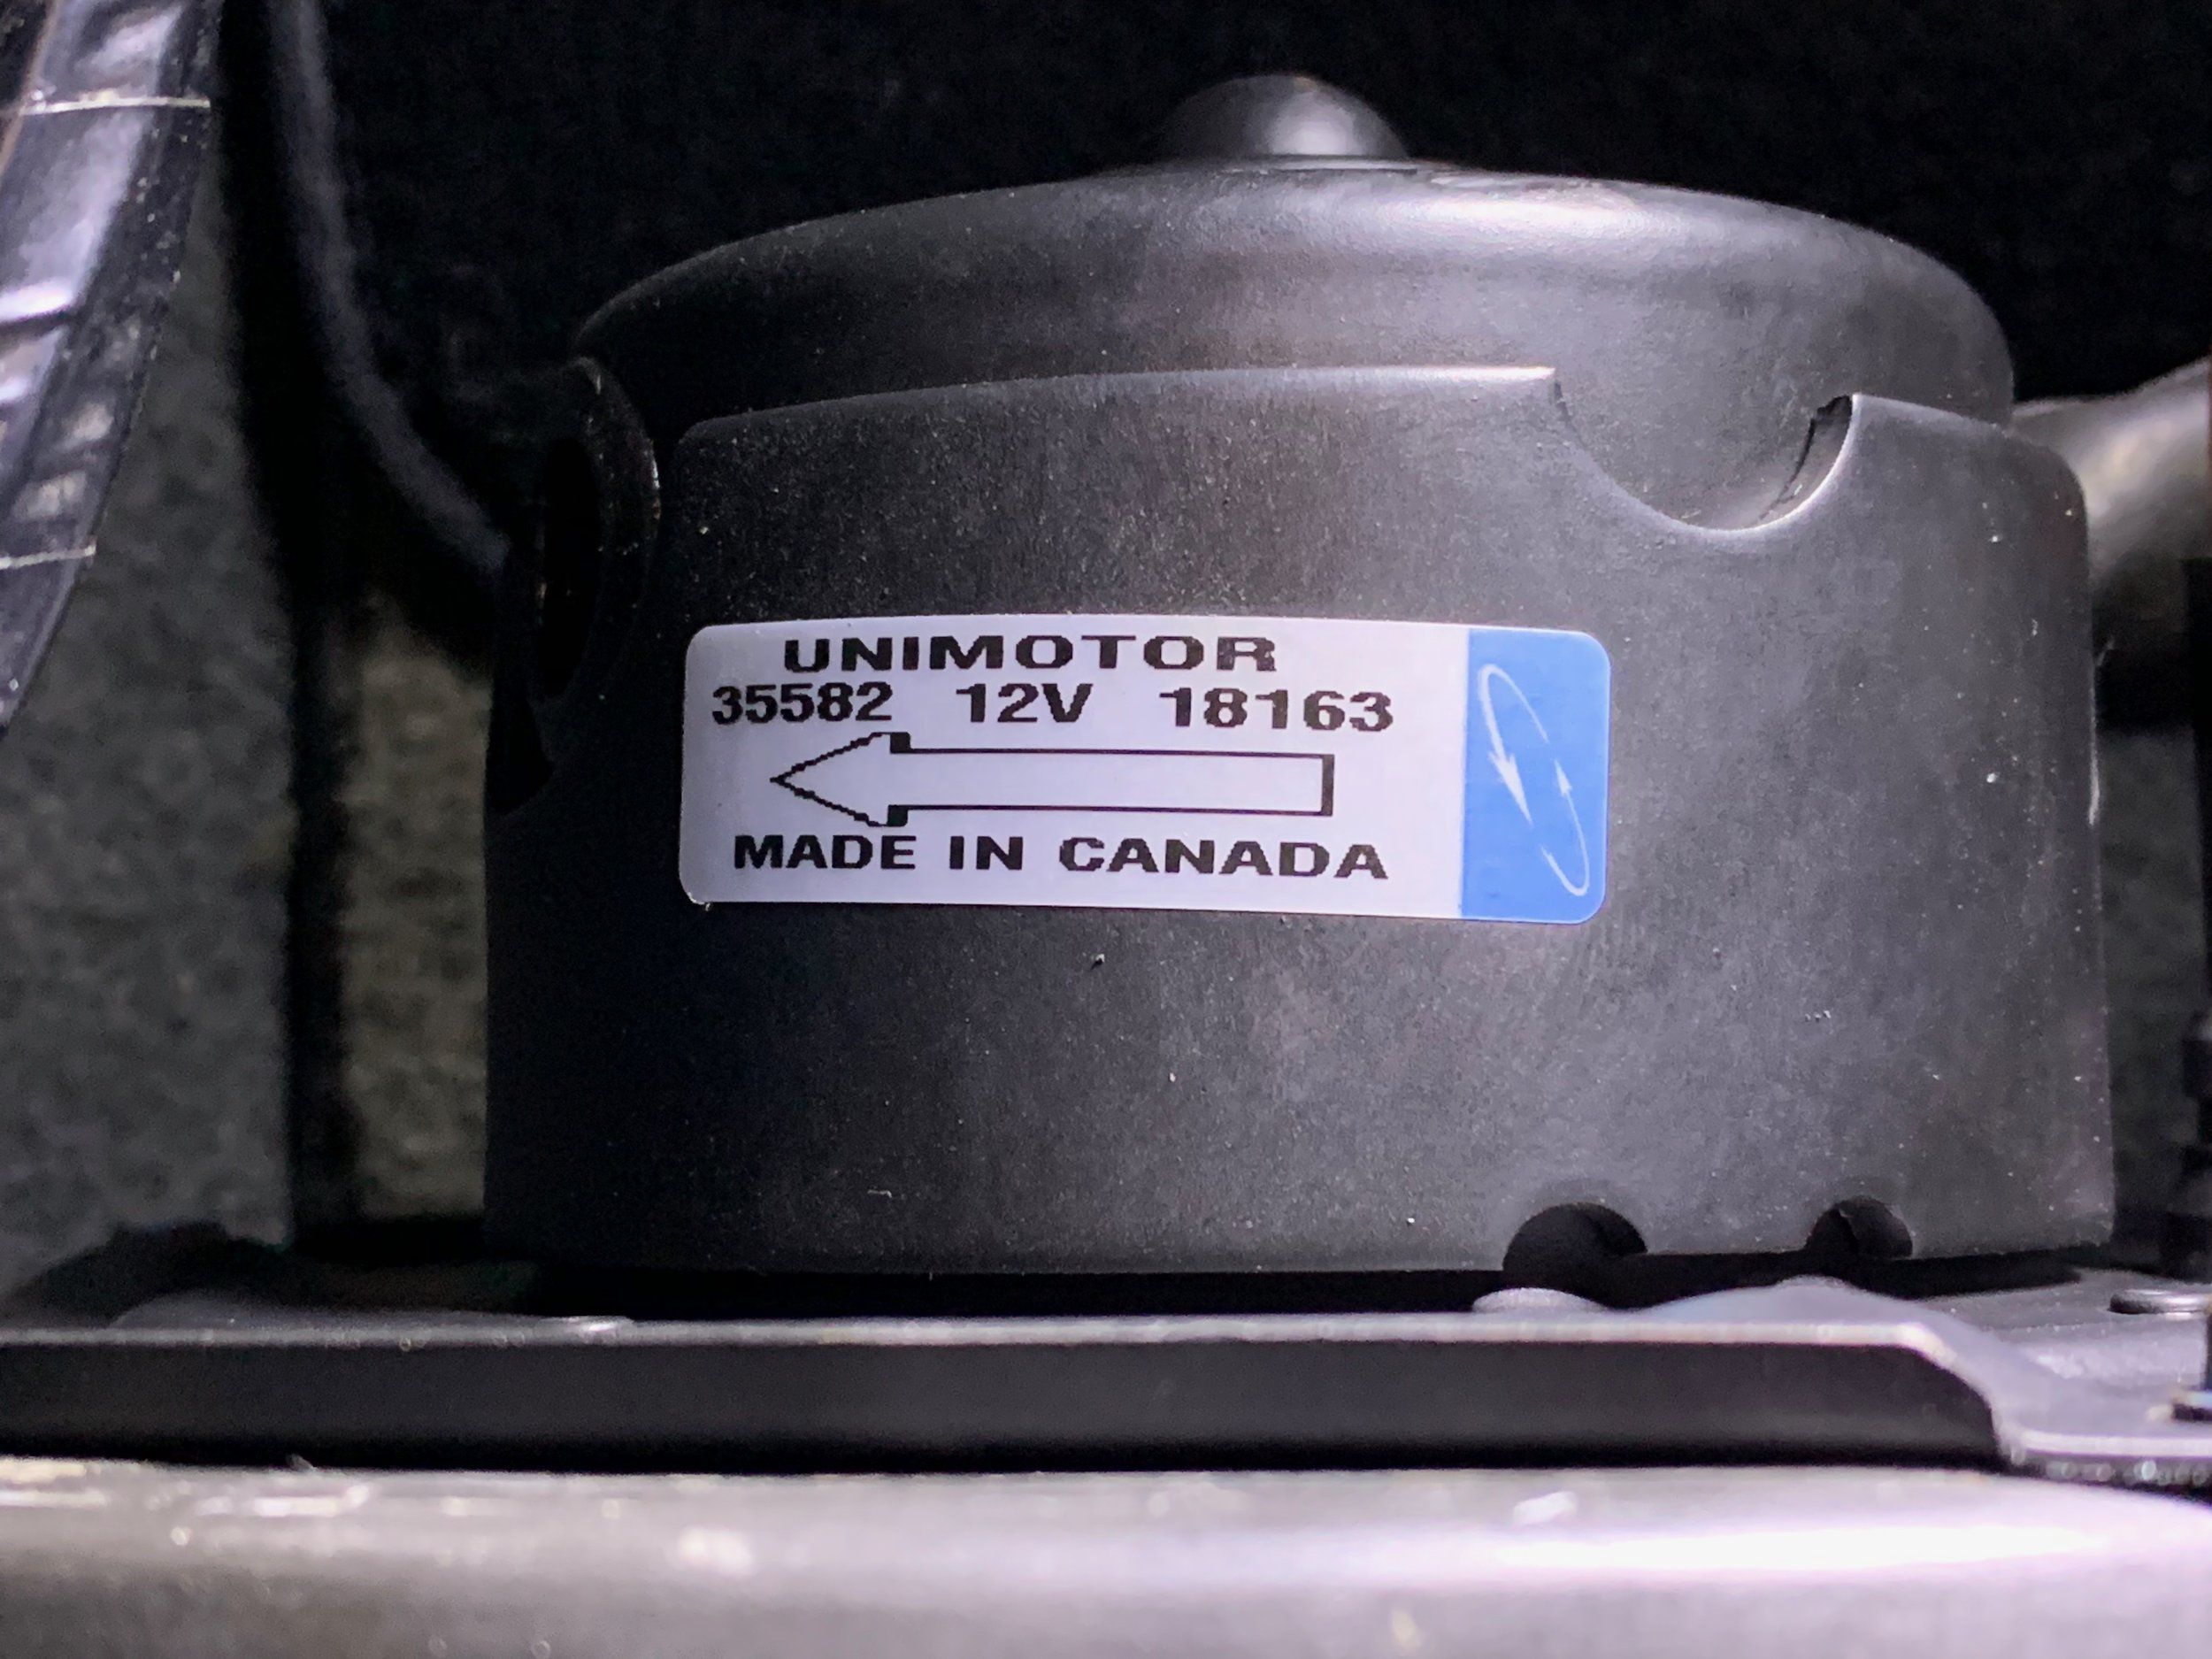 The label of the new blower motor, for reference.